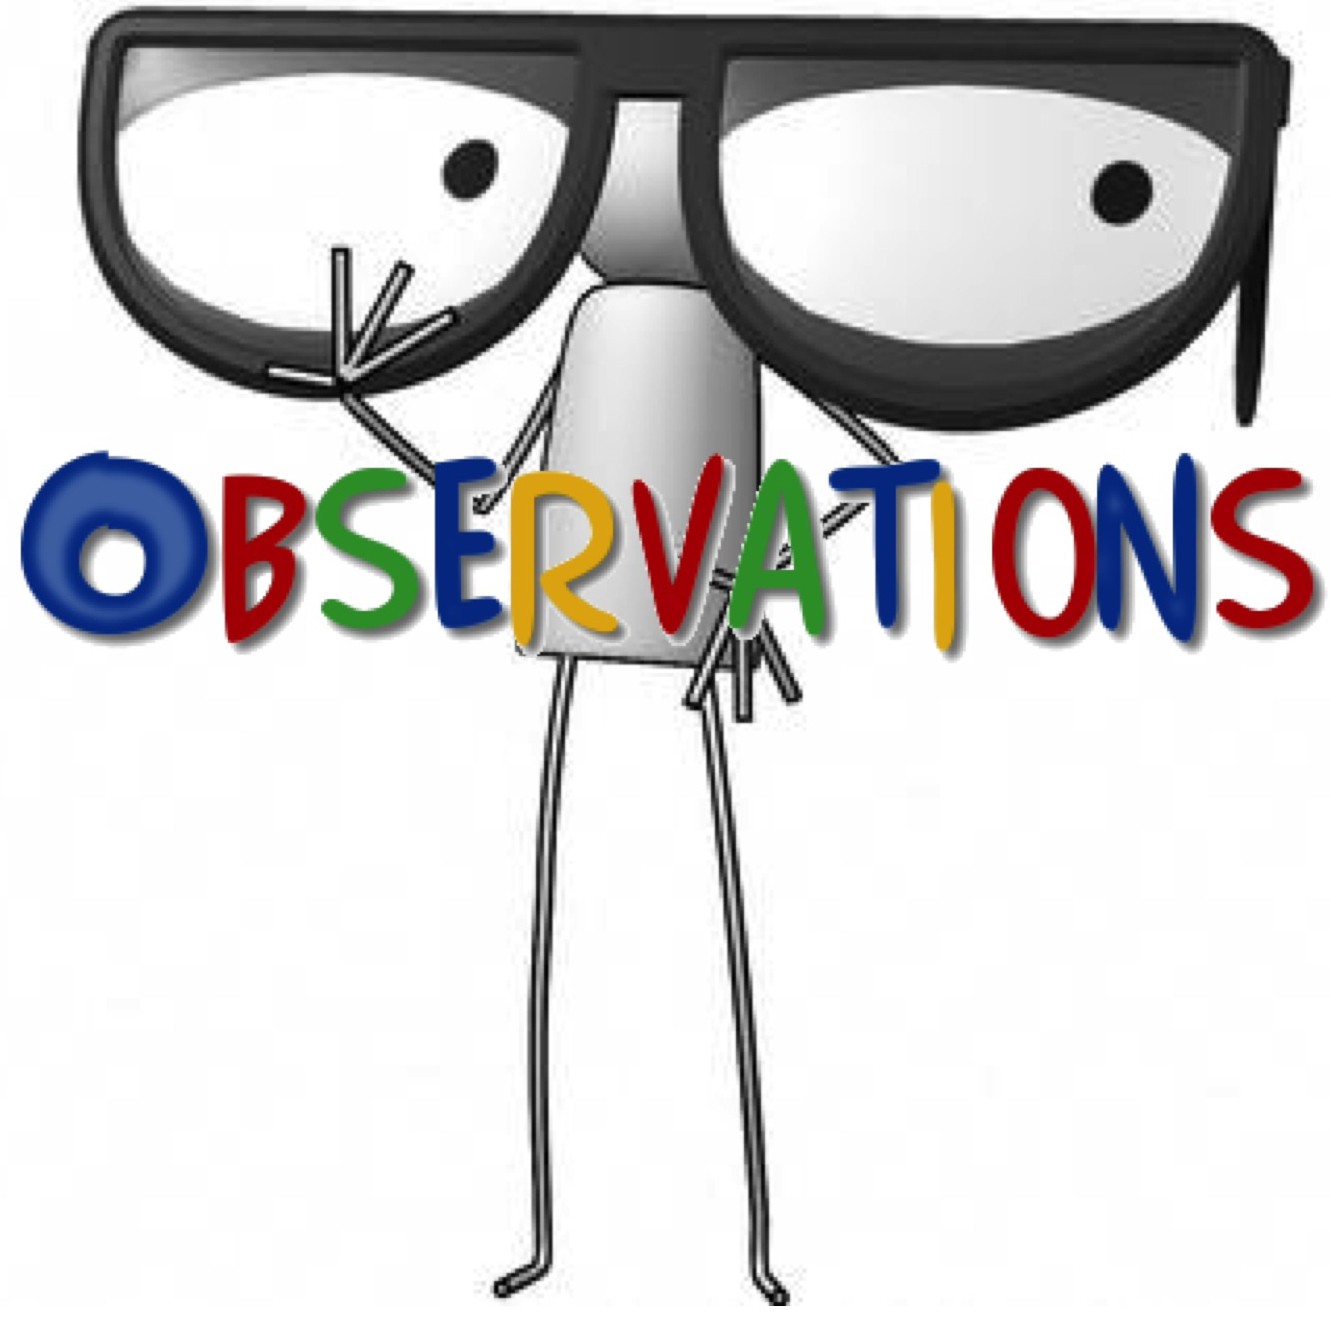 event observation essay Speaker observation essay 723 words may 4th, 2016 3 pages show more appendix: report dear professor miller, what follows is the report you requested on a possible speaker for the event that eu business school will be hosting after viewing various speakers' presentations i have decided to analyze noreena.